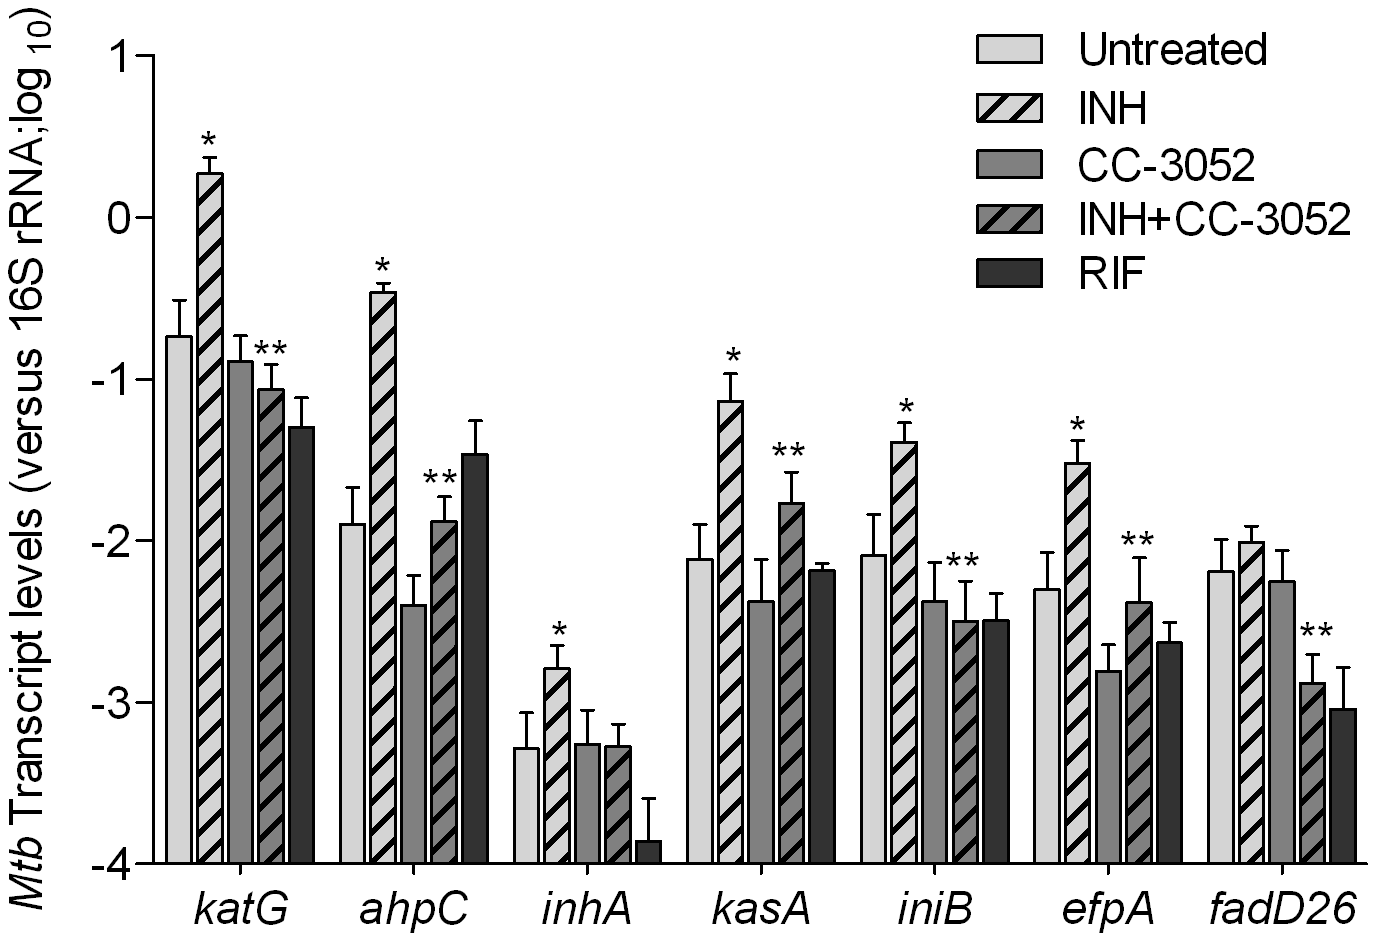 Effect of CC-3052 treatment on the expression of <i>Mtb</i> INH responsive genes in rabbit lungs.